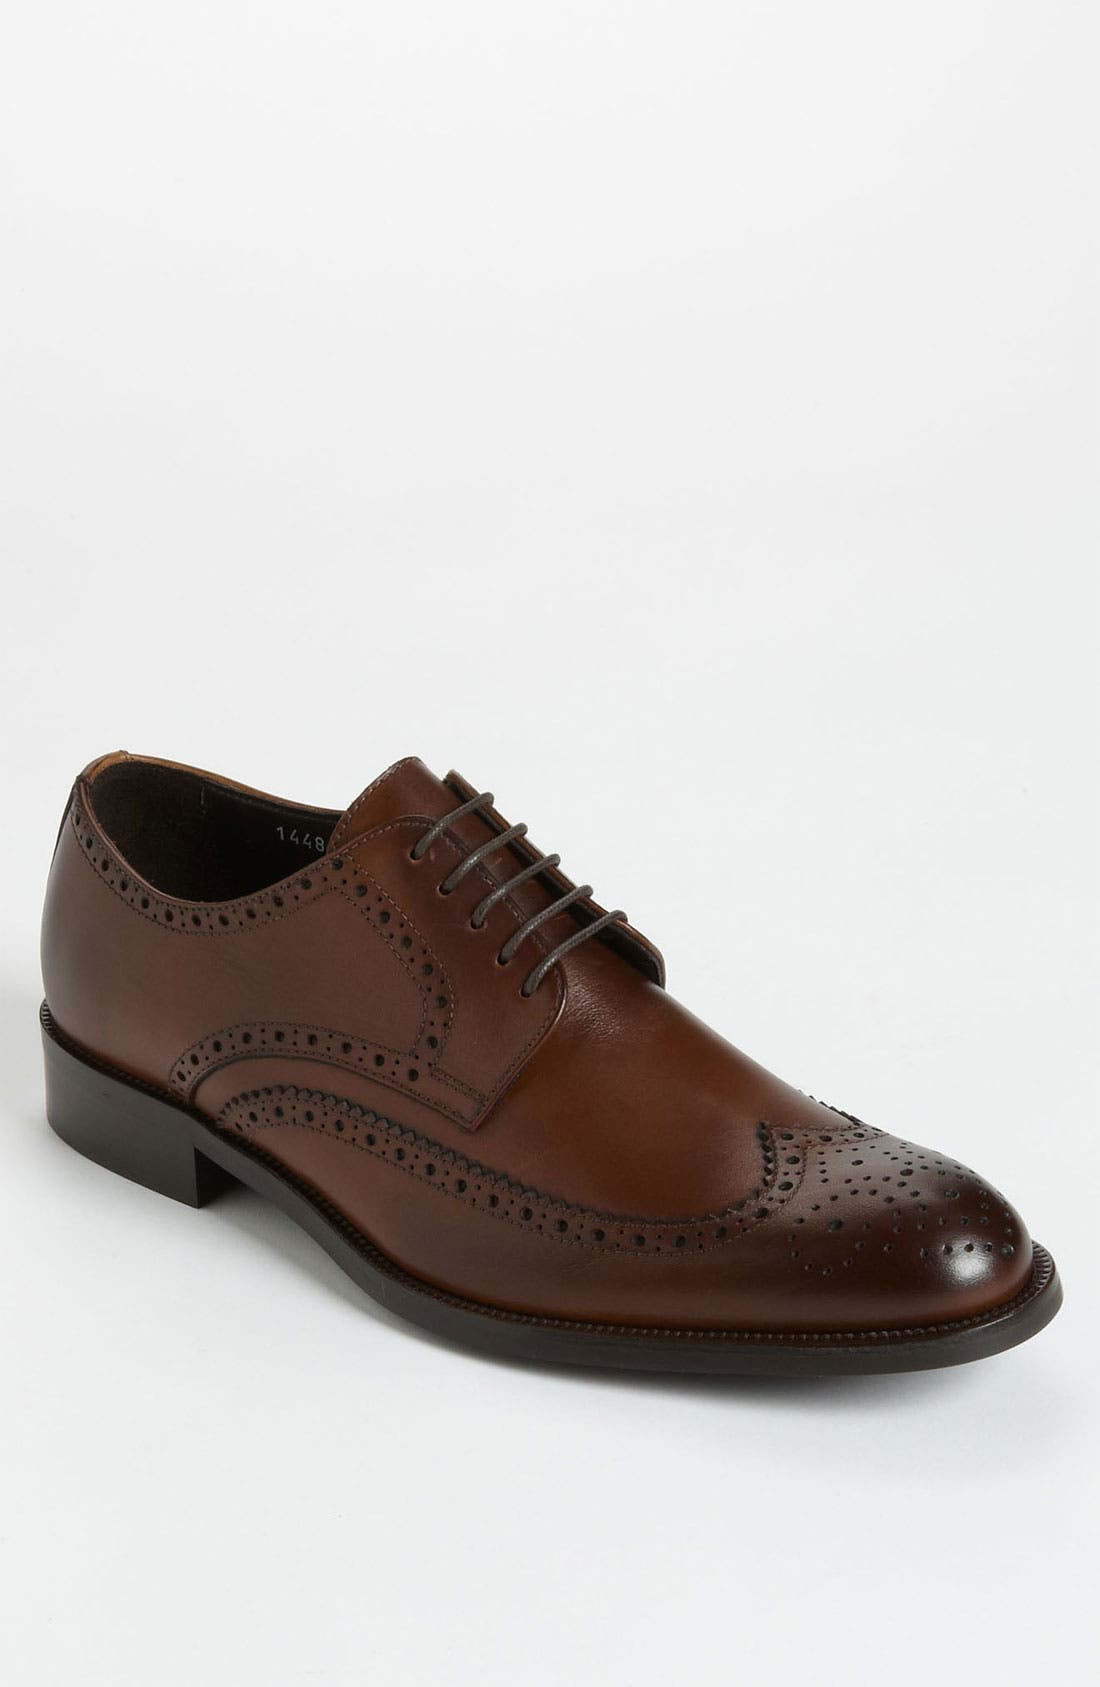 Alternate Image 1 Selected - To Boot New York 'Jake' Wingtip